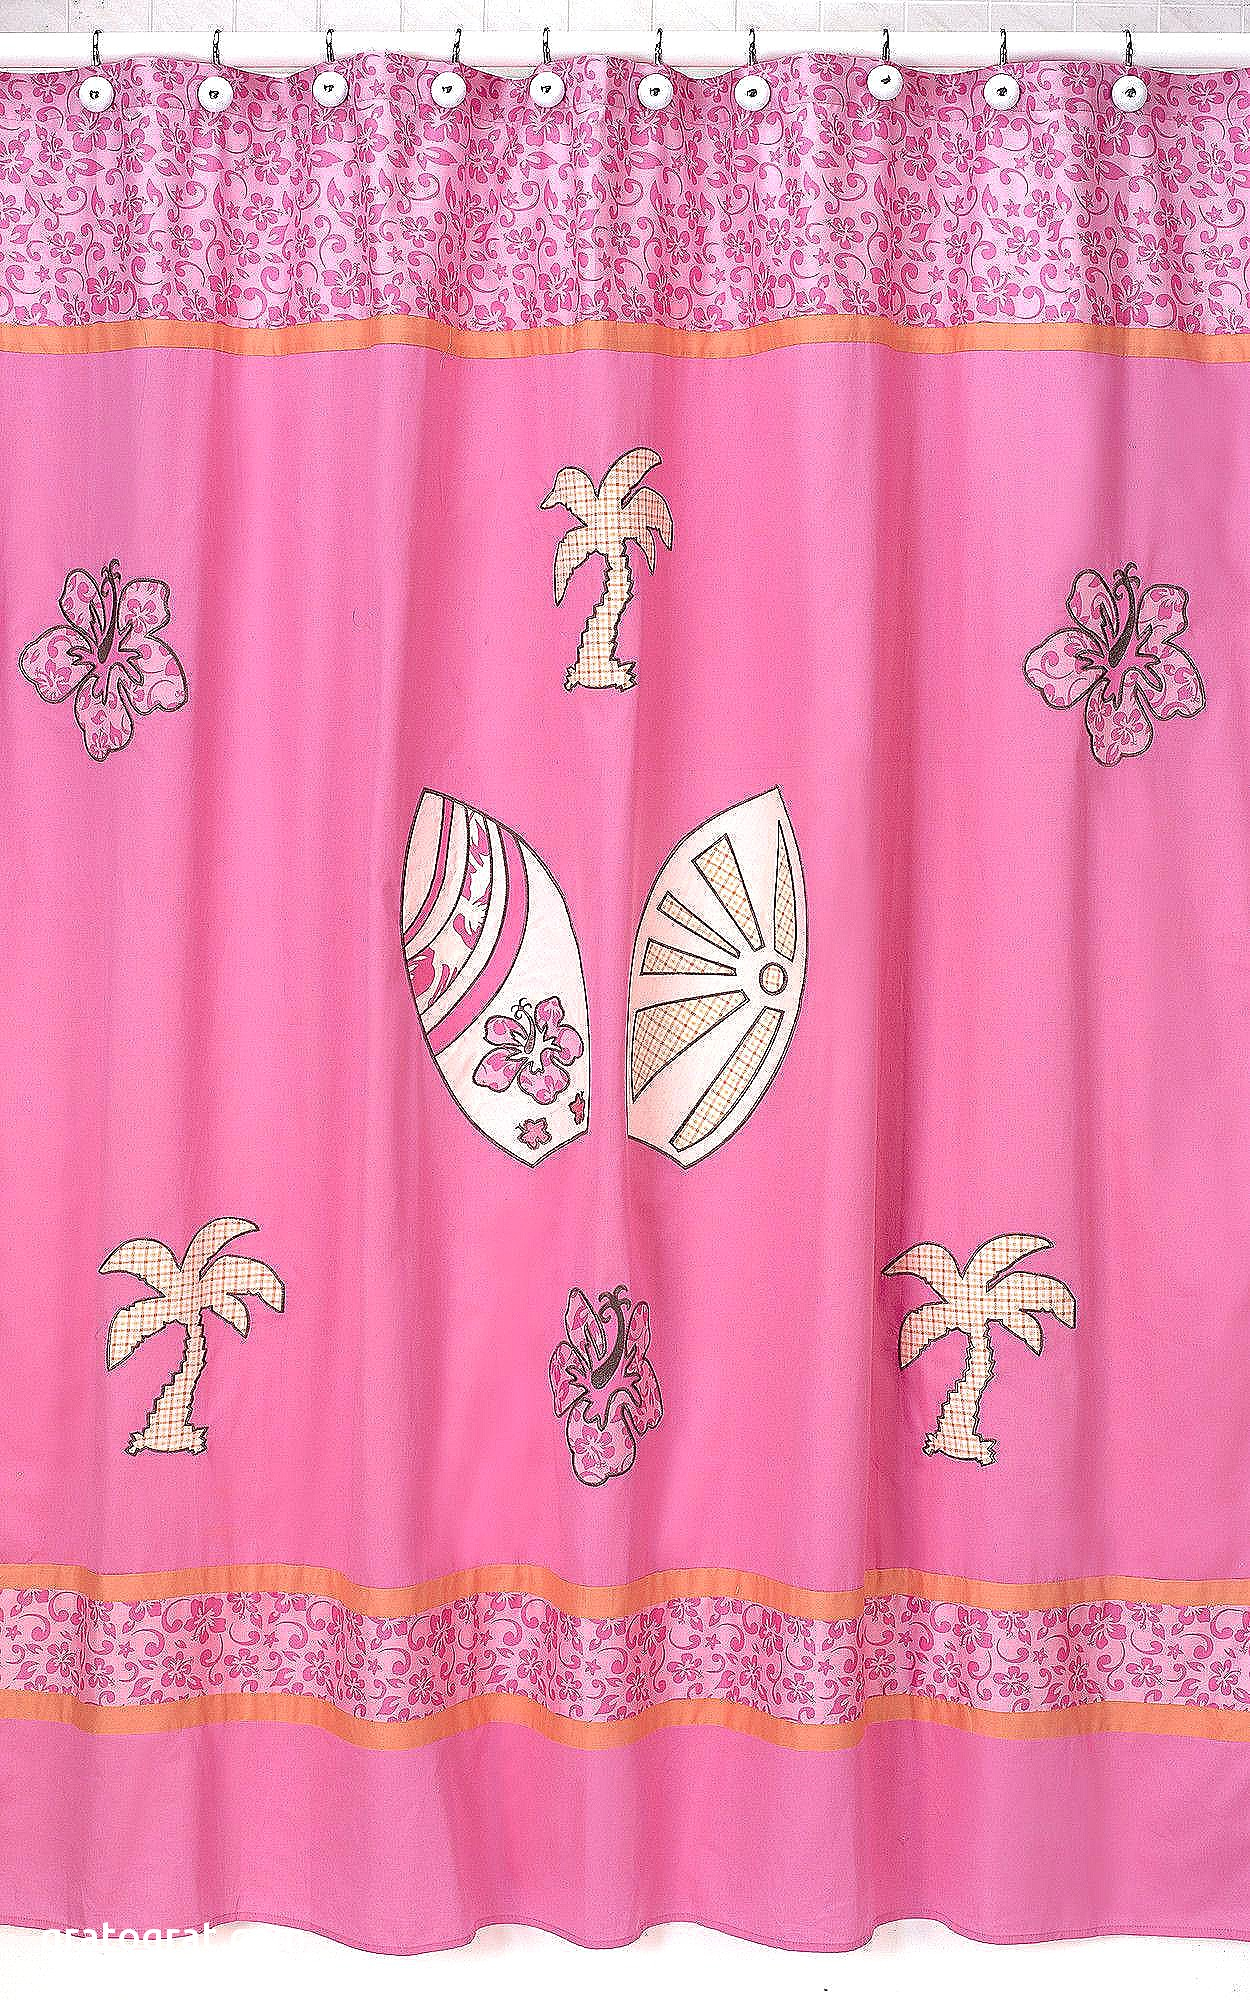 cheap size awesome full girls curtain curtains collegecute ideas cuteower for images girlscute and curtainscute of shower cutewer cute